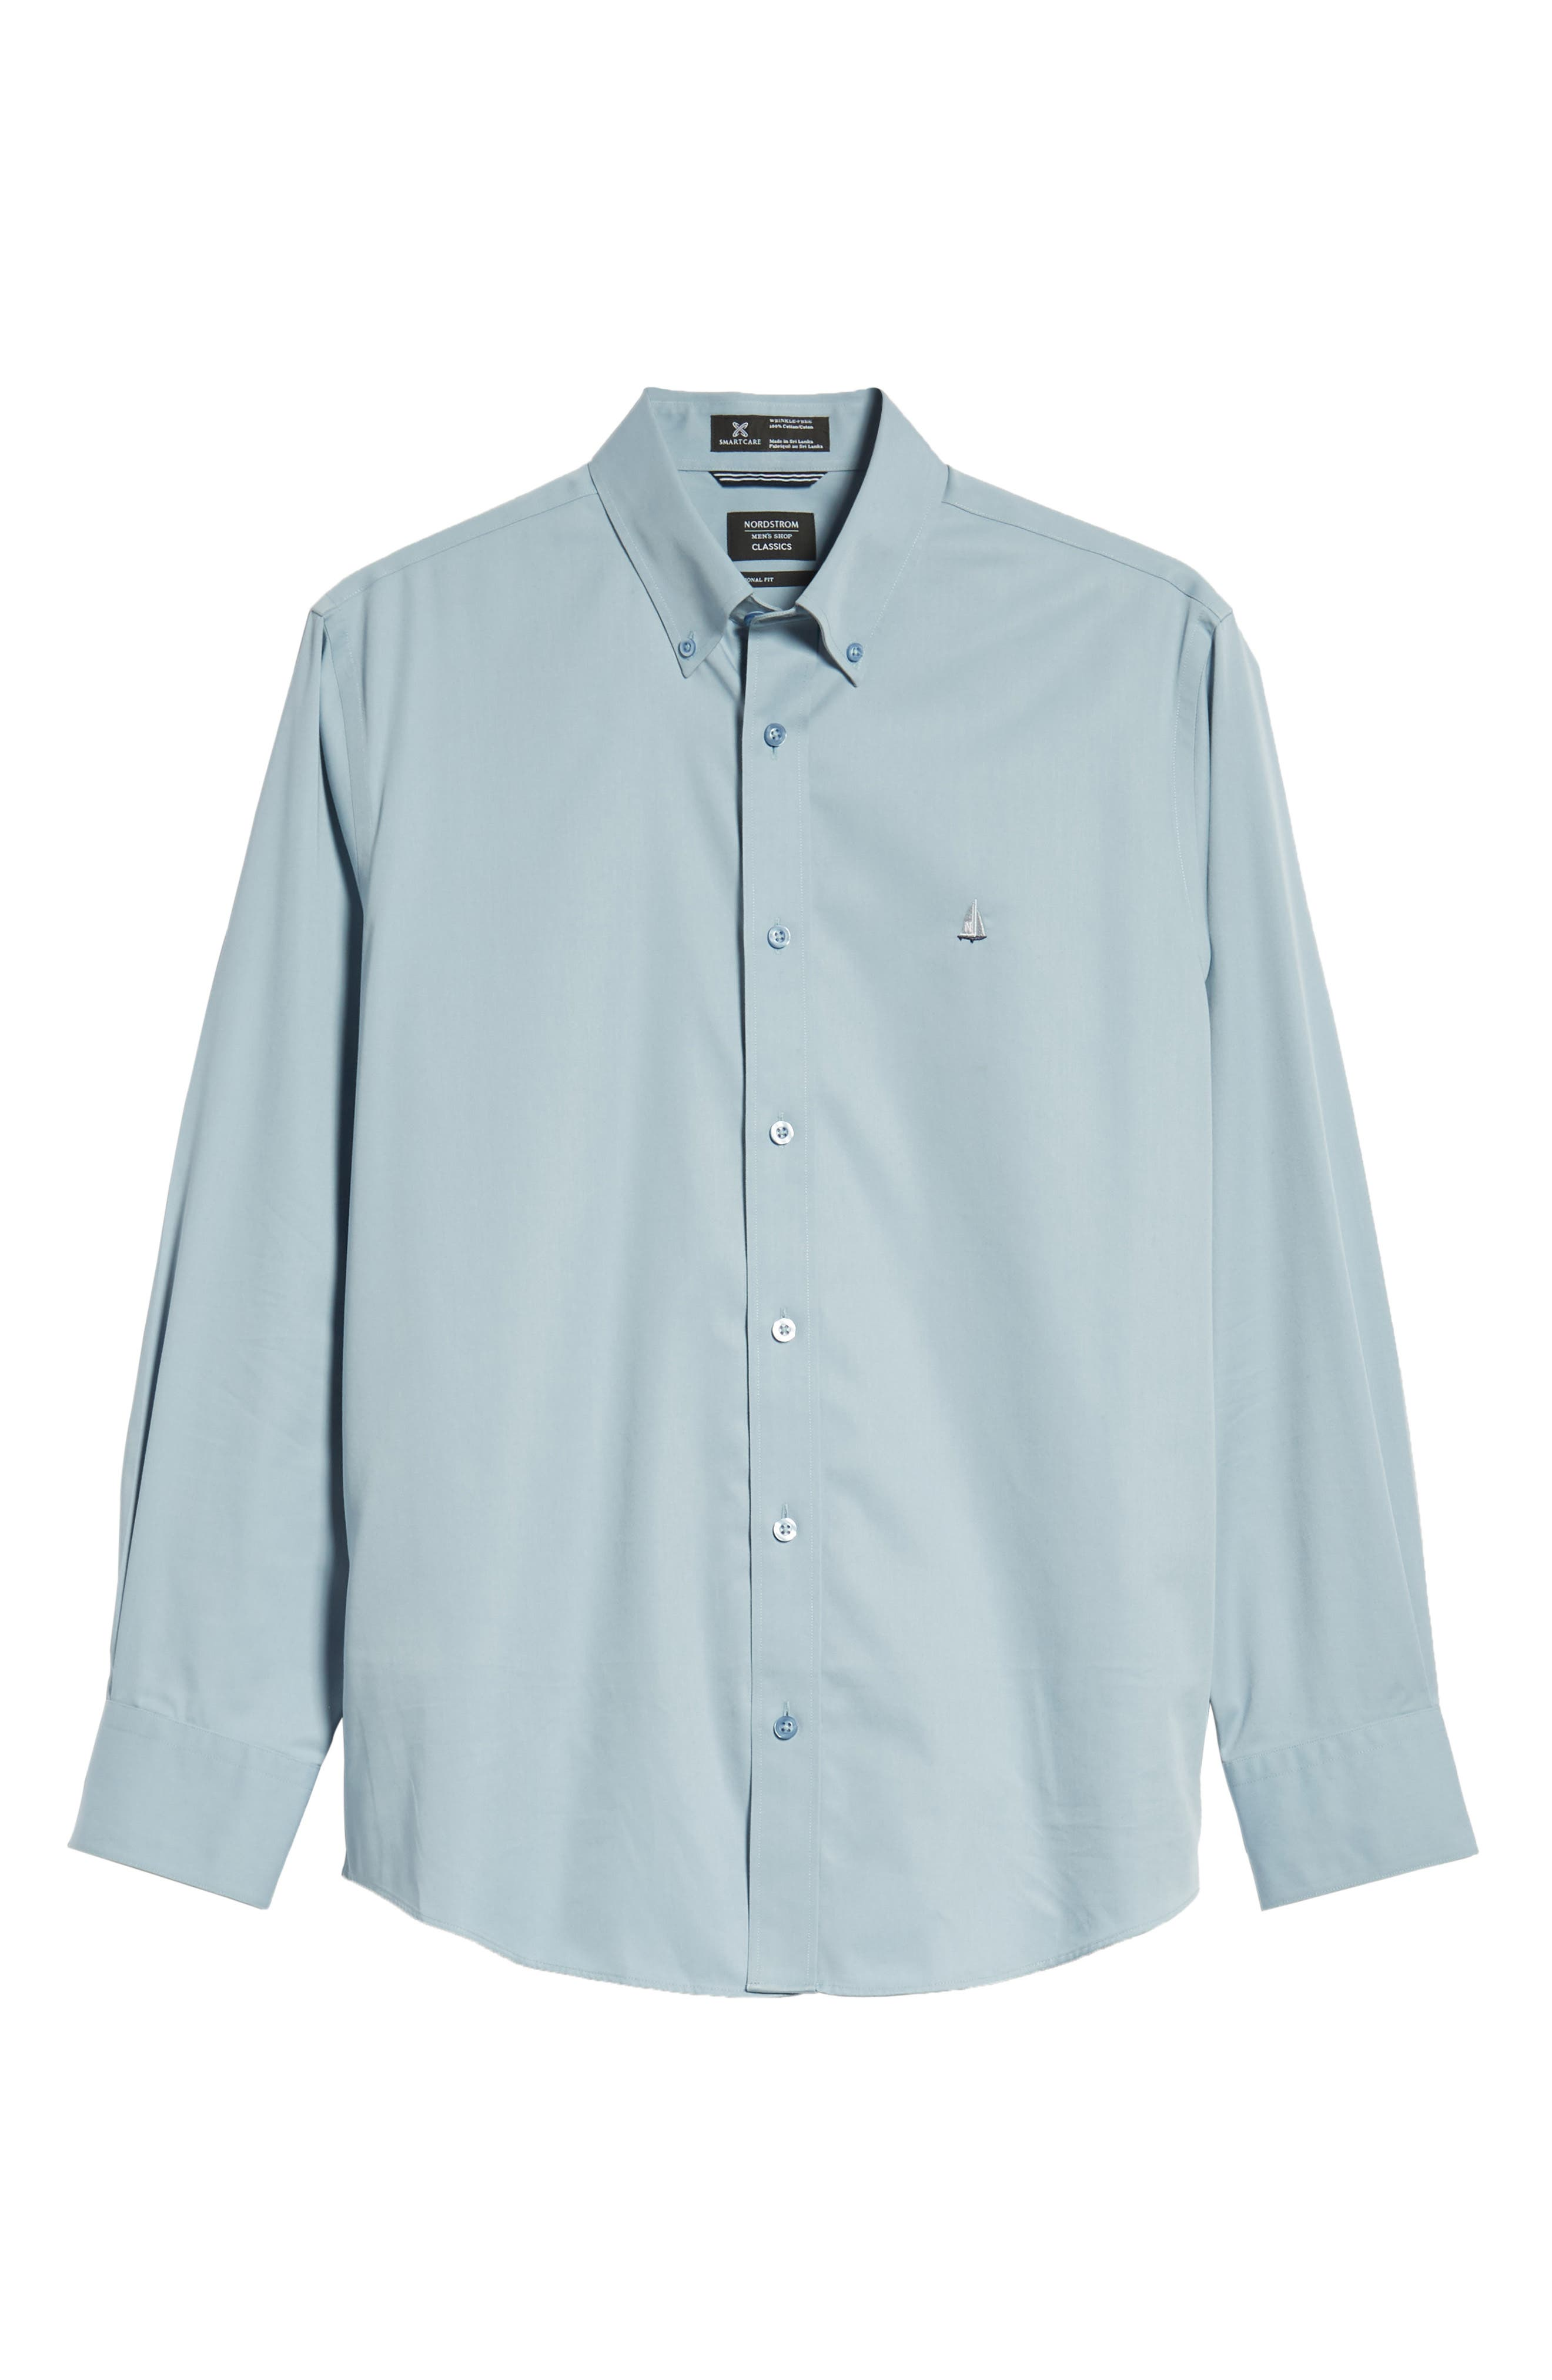 NORDSTROM MEN'S SHOP,                             Smartcare<sup>™</sup> Traditional Fit Twill Boat Shirt,                             Alternate thumbnail 6, color,                             BLUE DRIZZLE